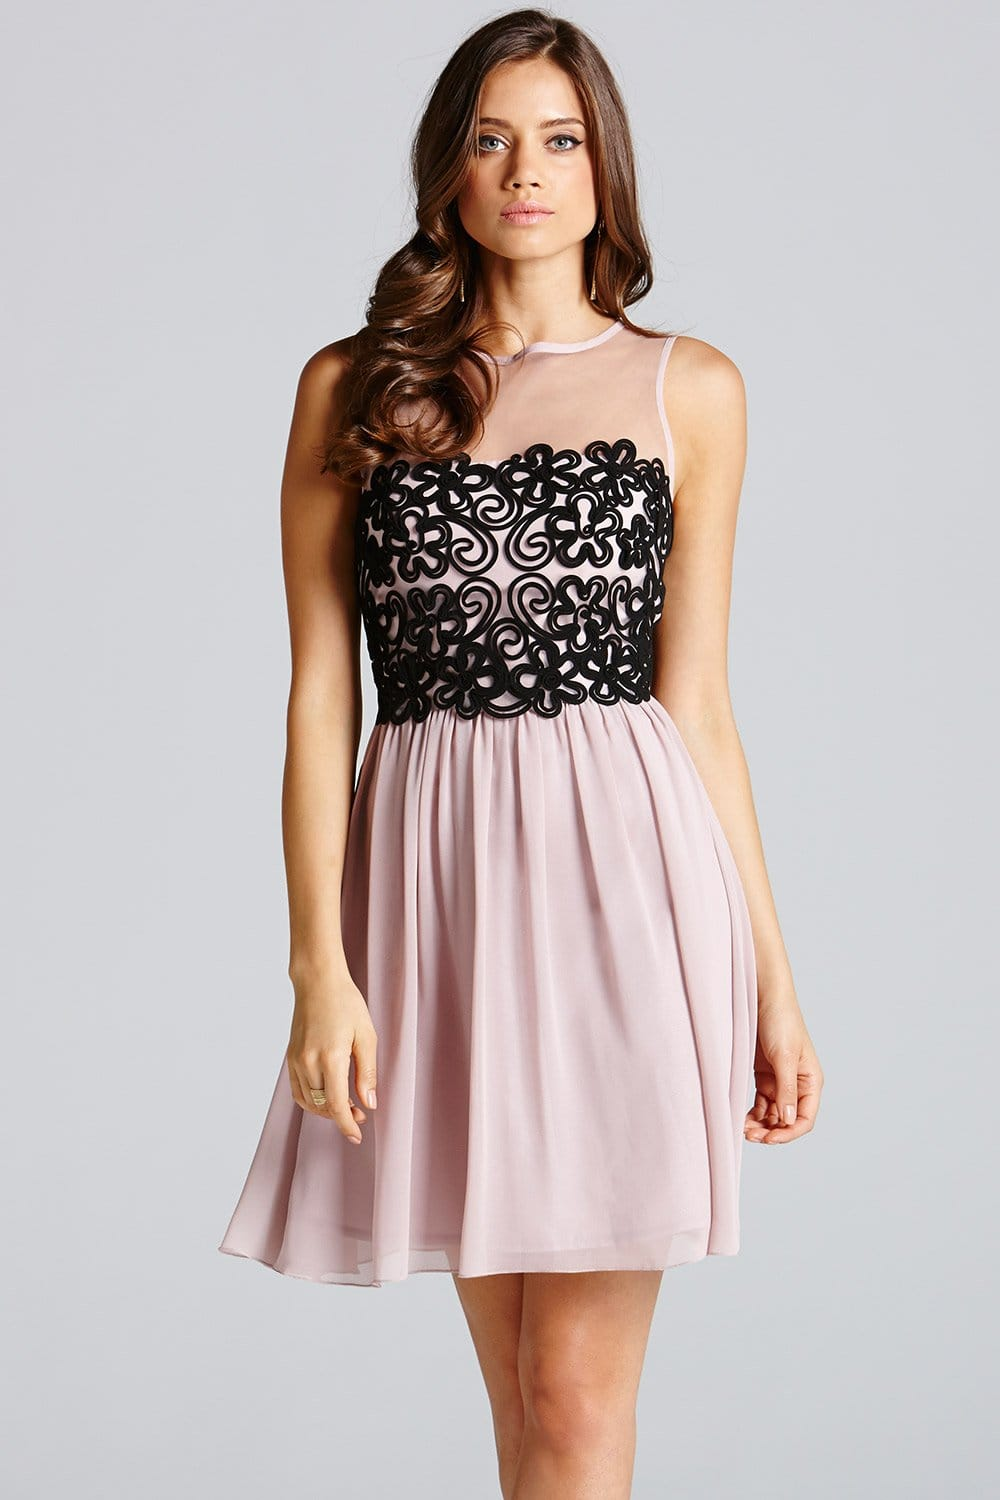 Little Mistress Black And Gold Floral Fit And Flare Dress